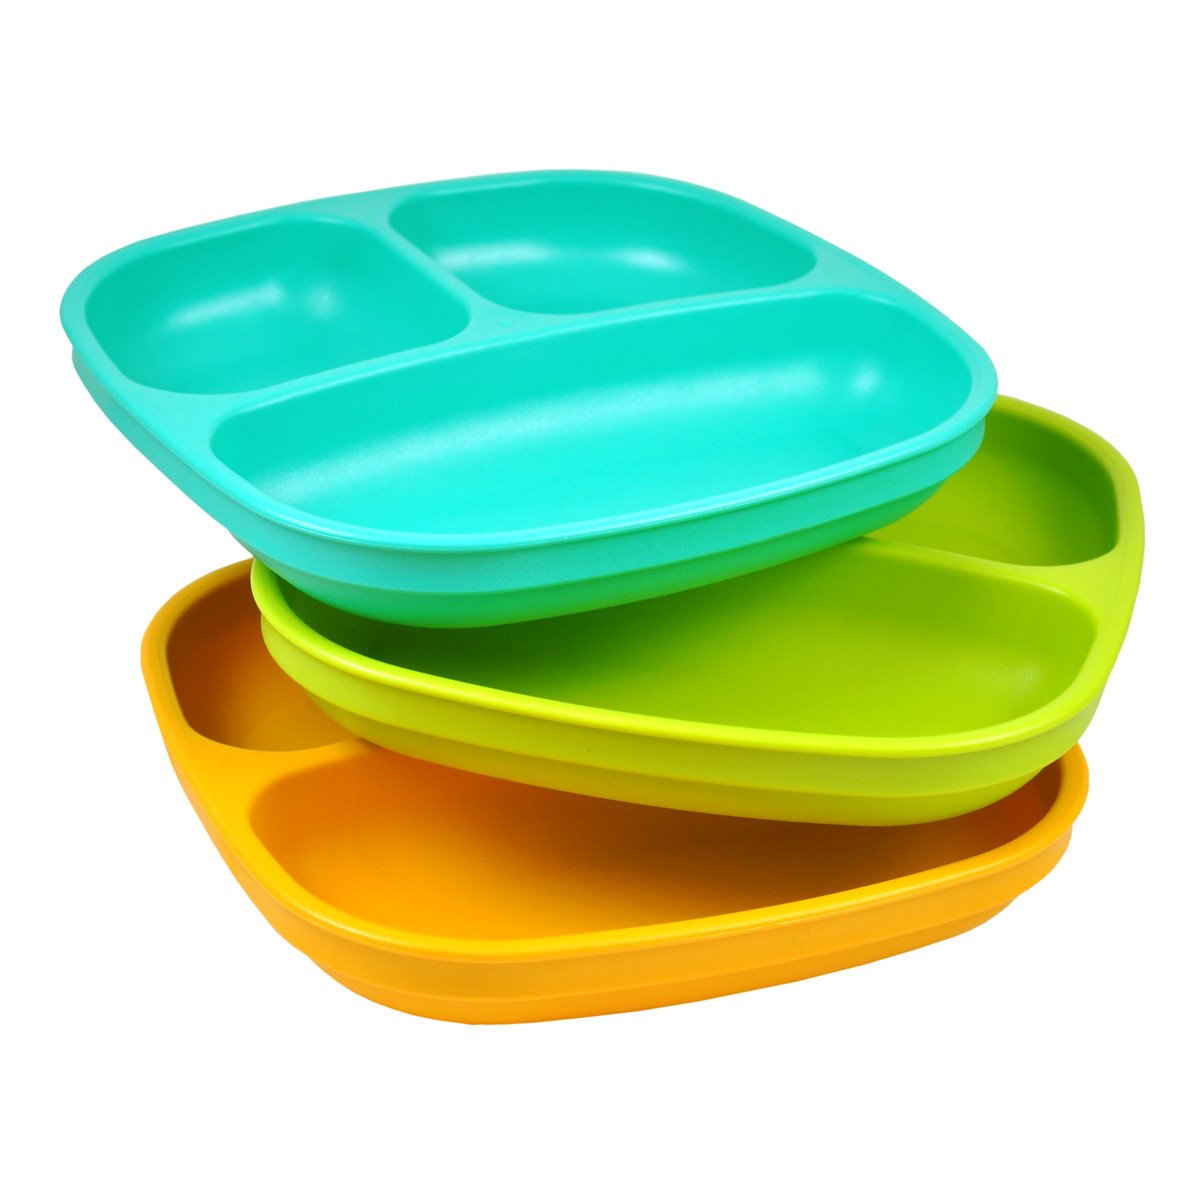 Re-Play Divided Plates, Aqua/Green/Sunny Yellow, 3-Pack Re-Think It Inc. 80802